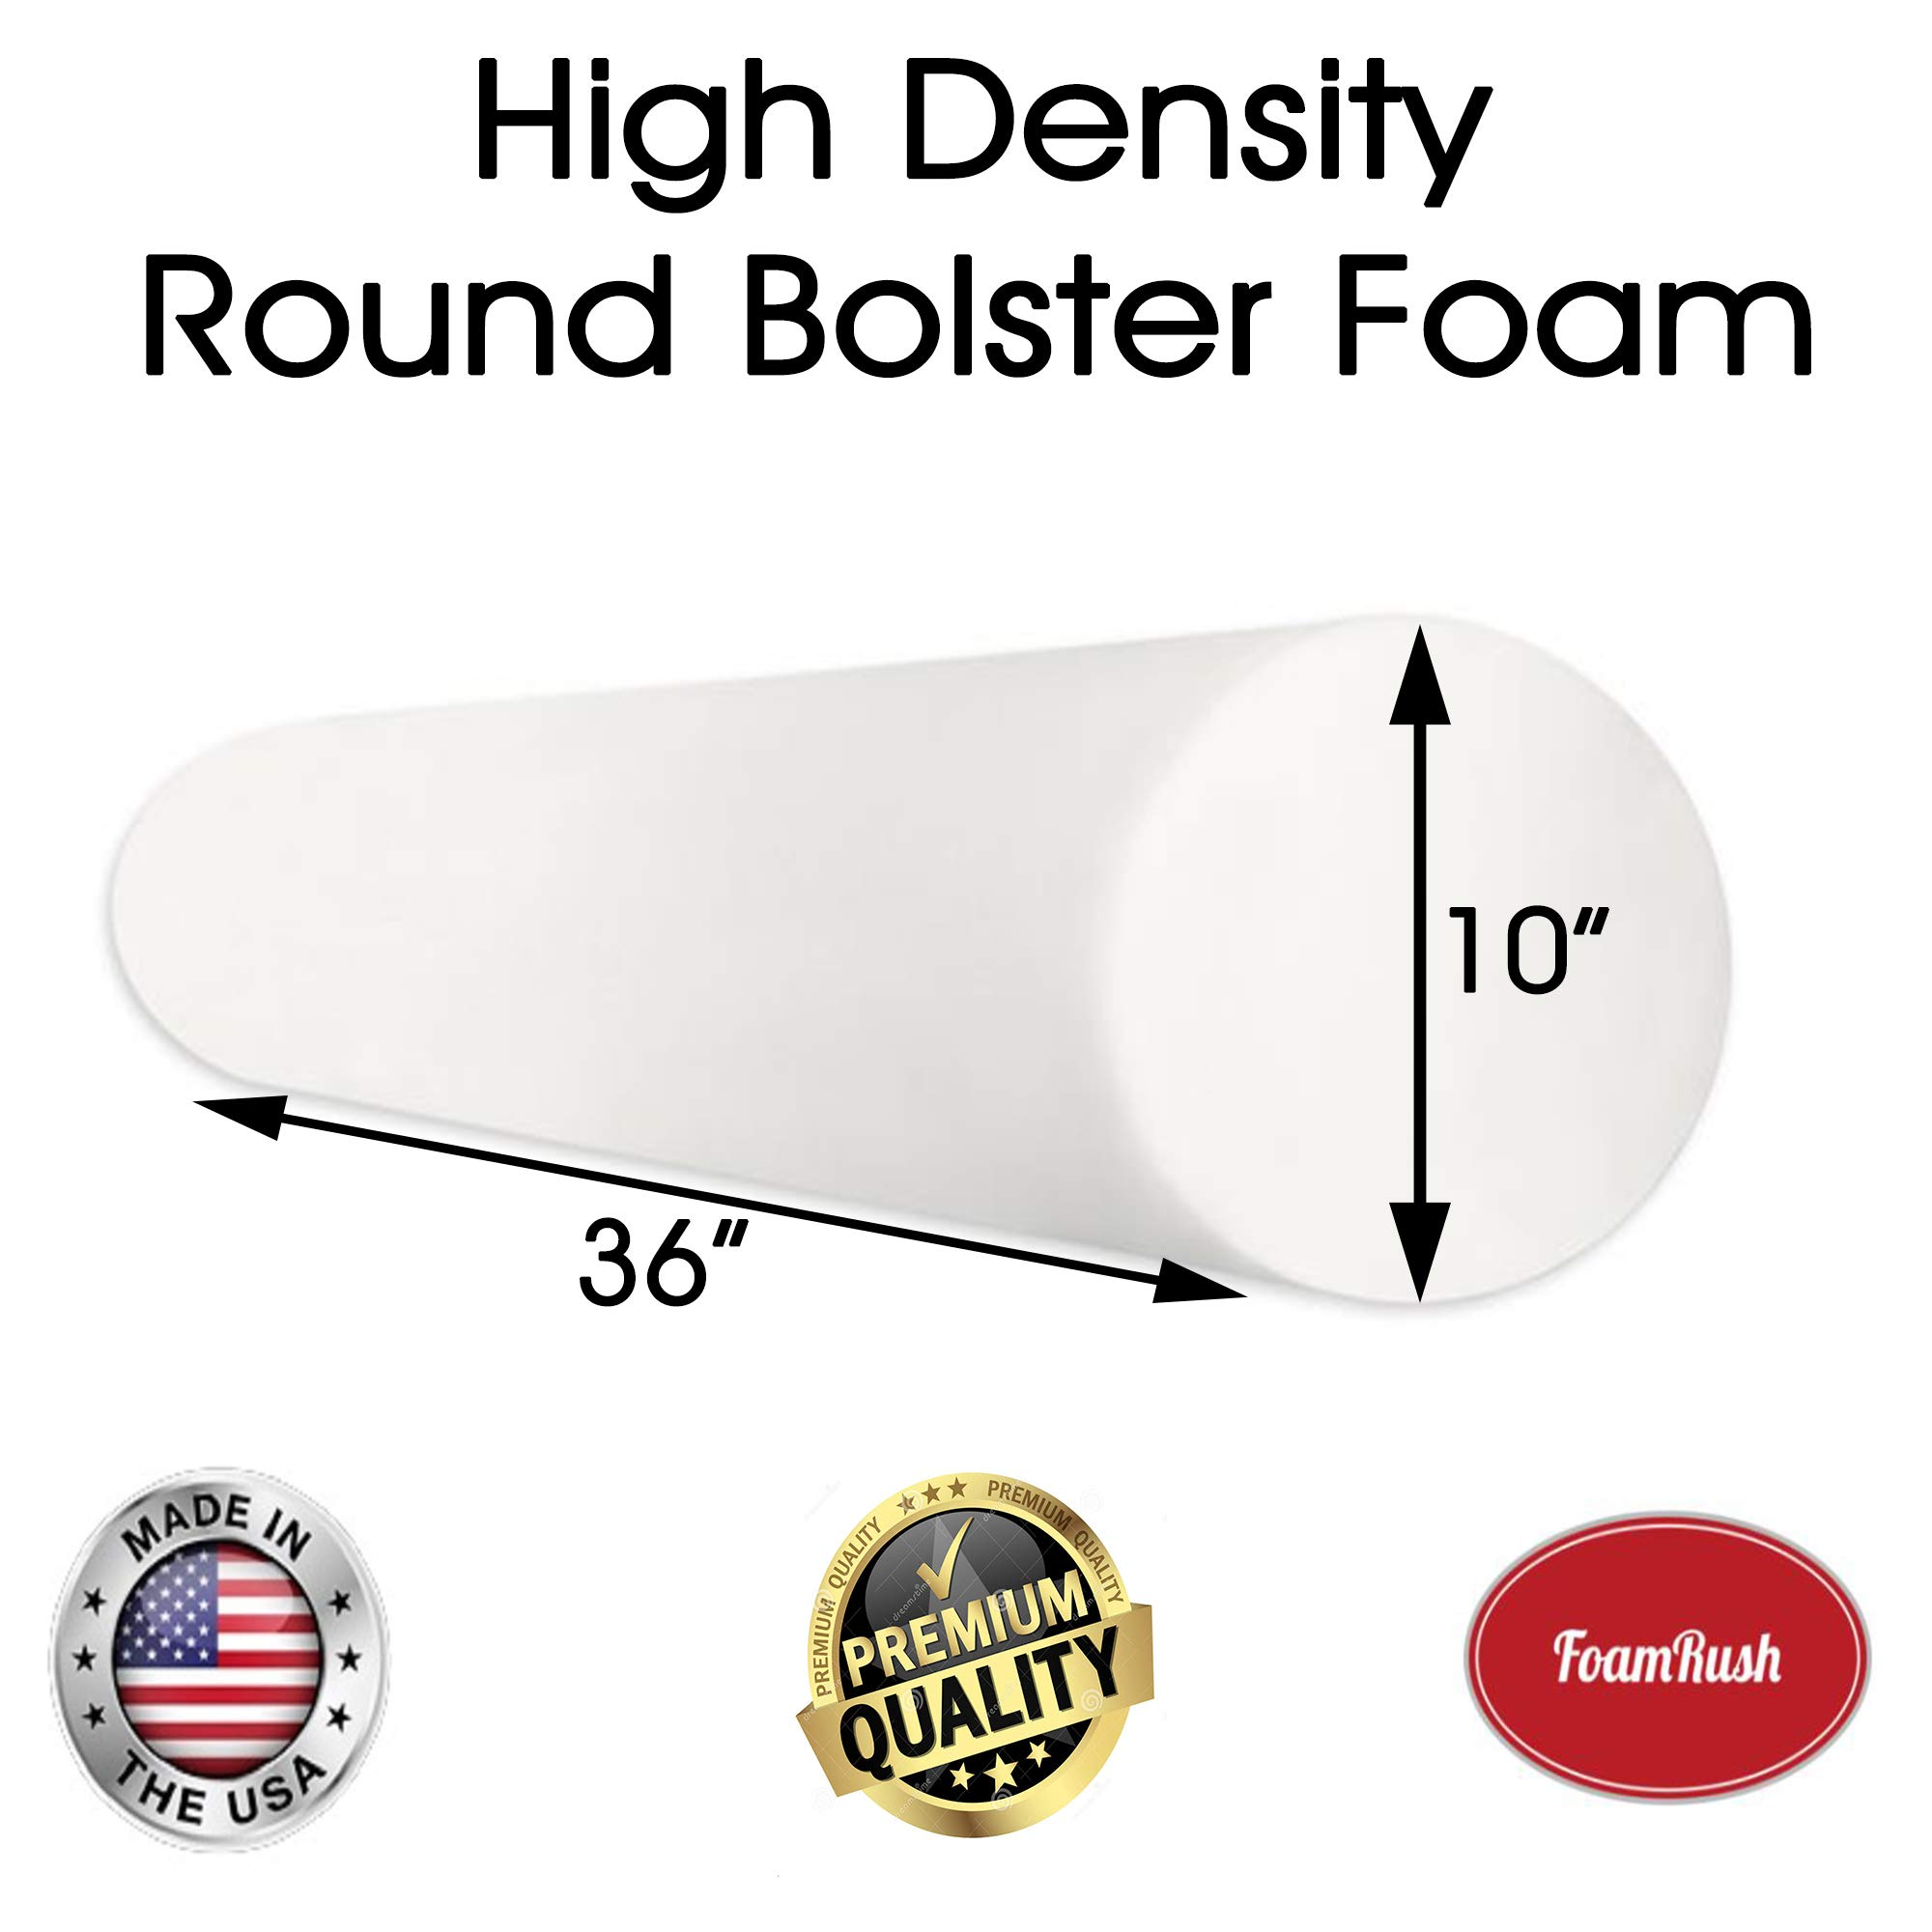 FoamRush 10'' Diameter x 36'' Long Premium Quality High Density Round Bolster Upholstery Foam Roller (Ideal for Yoga, Pilates, Strength Training, and General Fitness) Made in USA